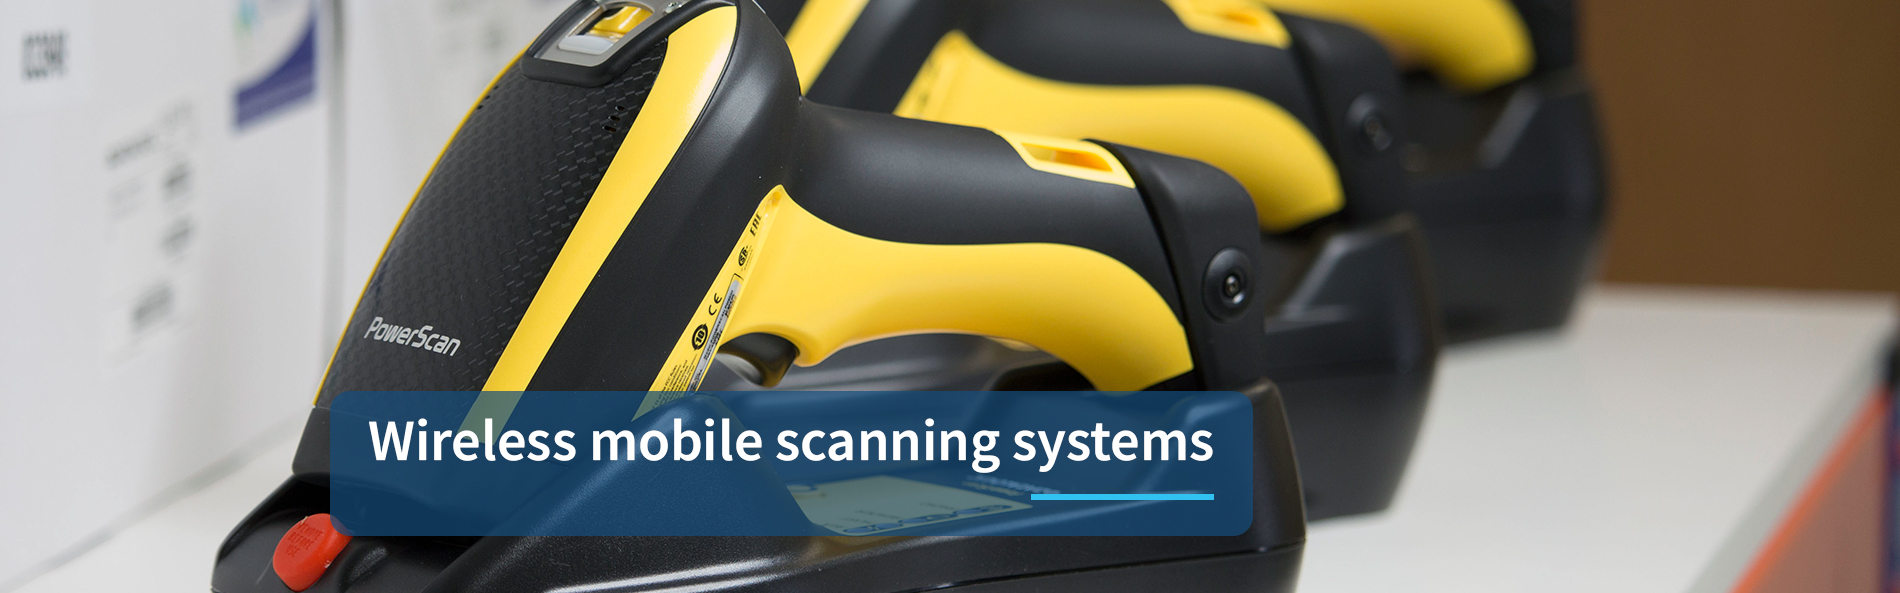 Mobile Wireless scanning systems